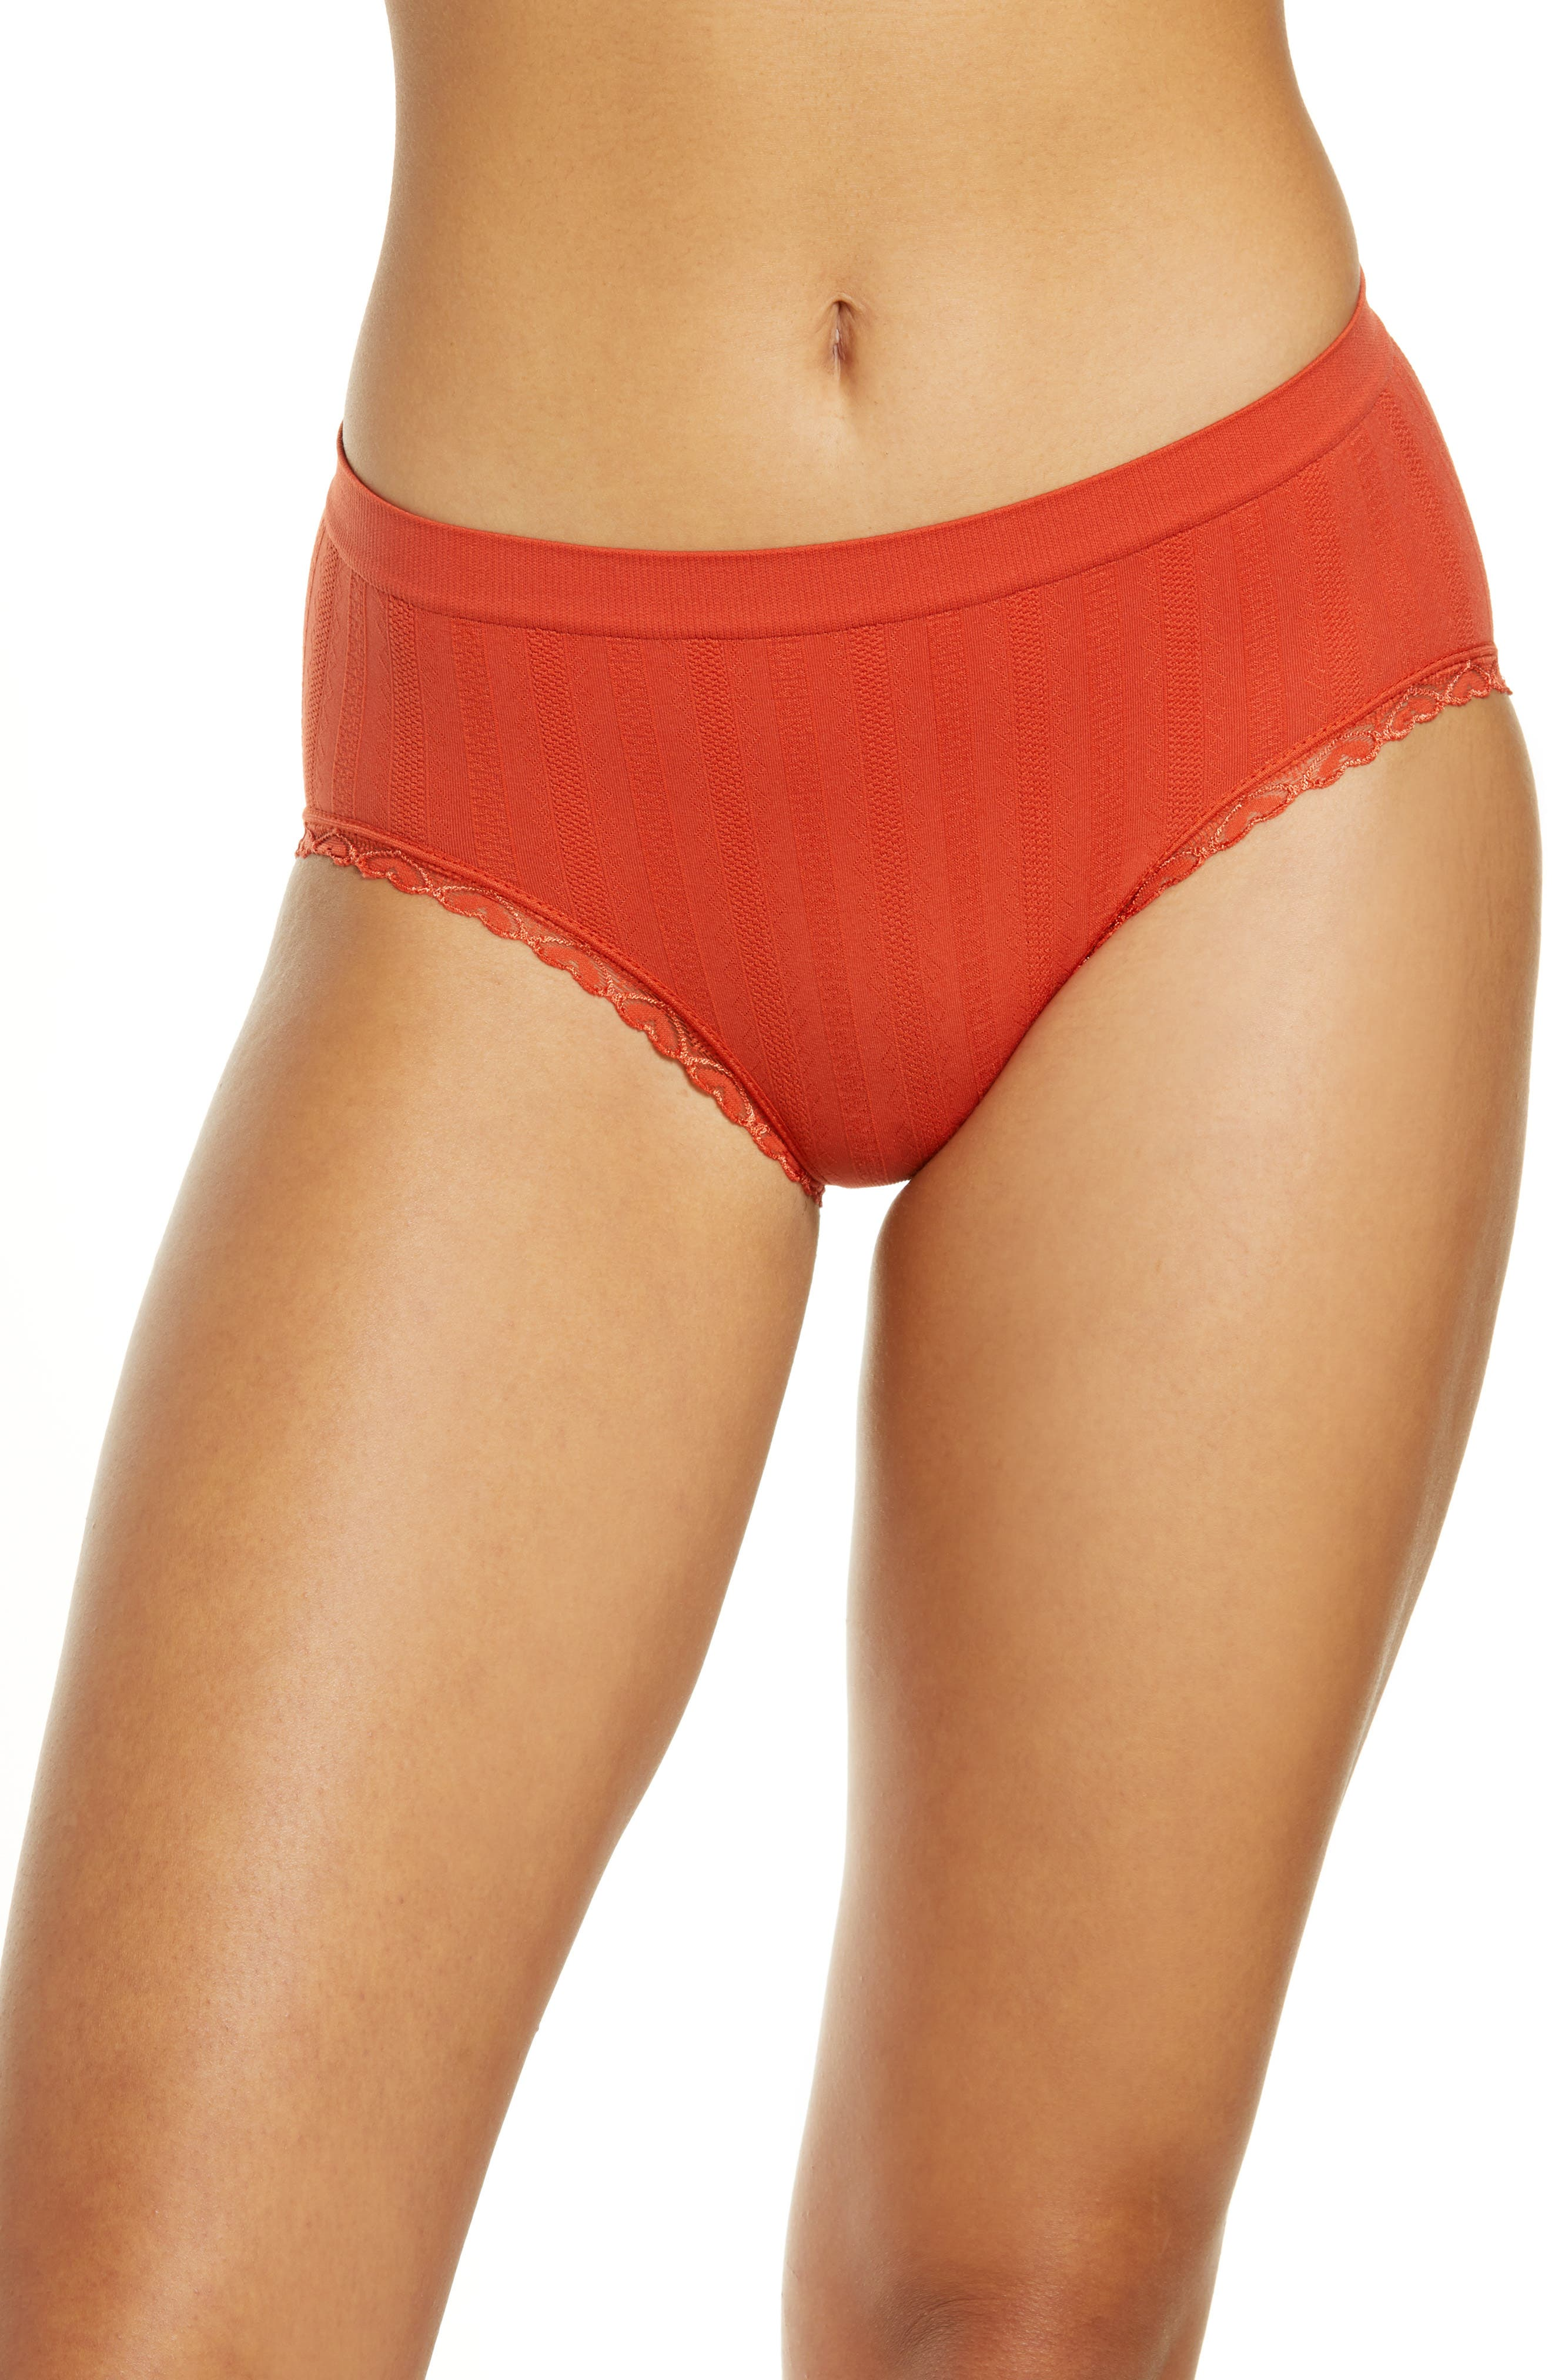 3 X Ladies Womens Cotton Maxi Briefs With Lace Knicker Pant UK Size 12-22 BB